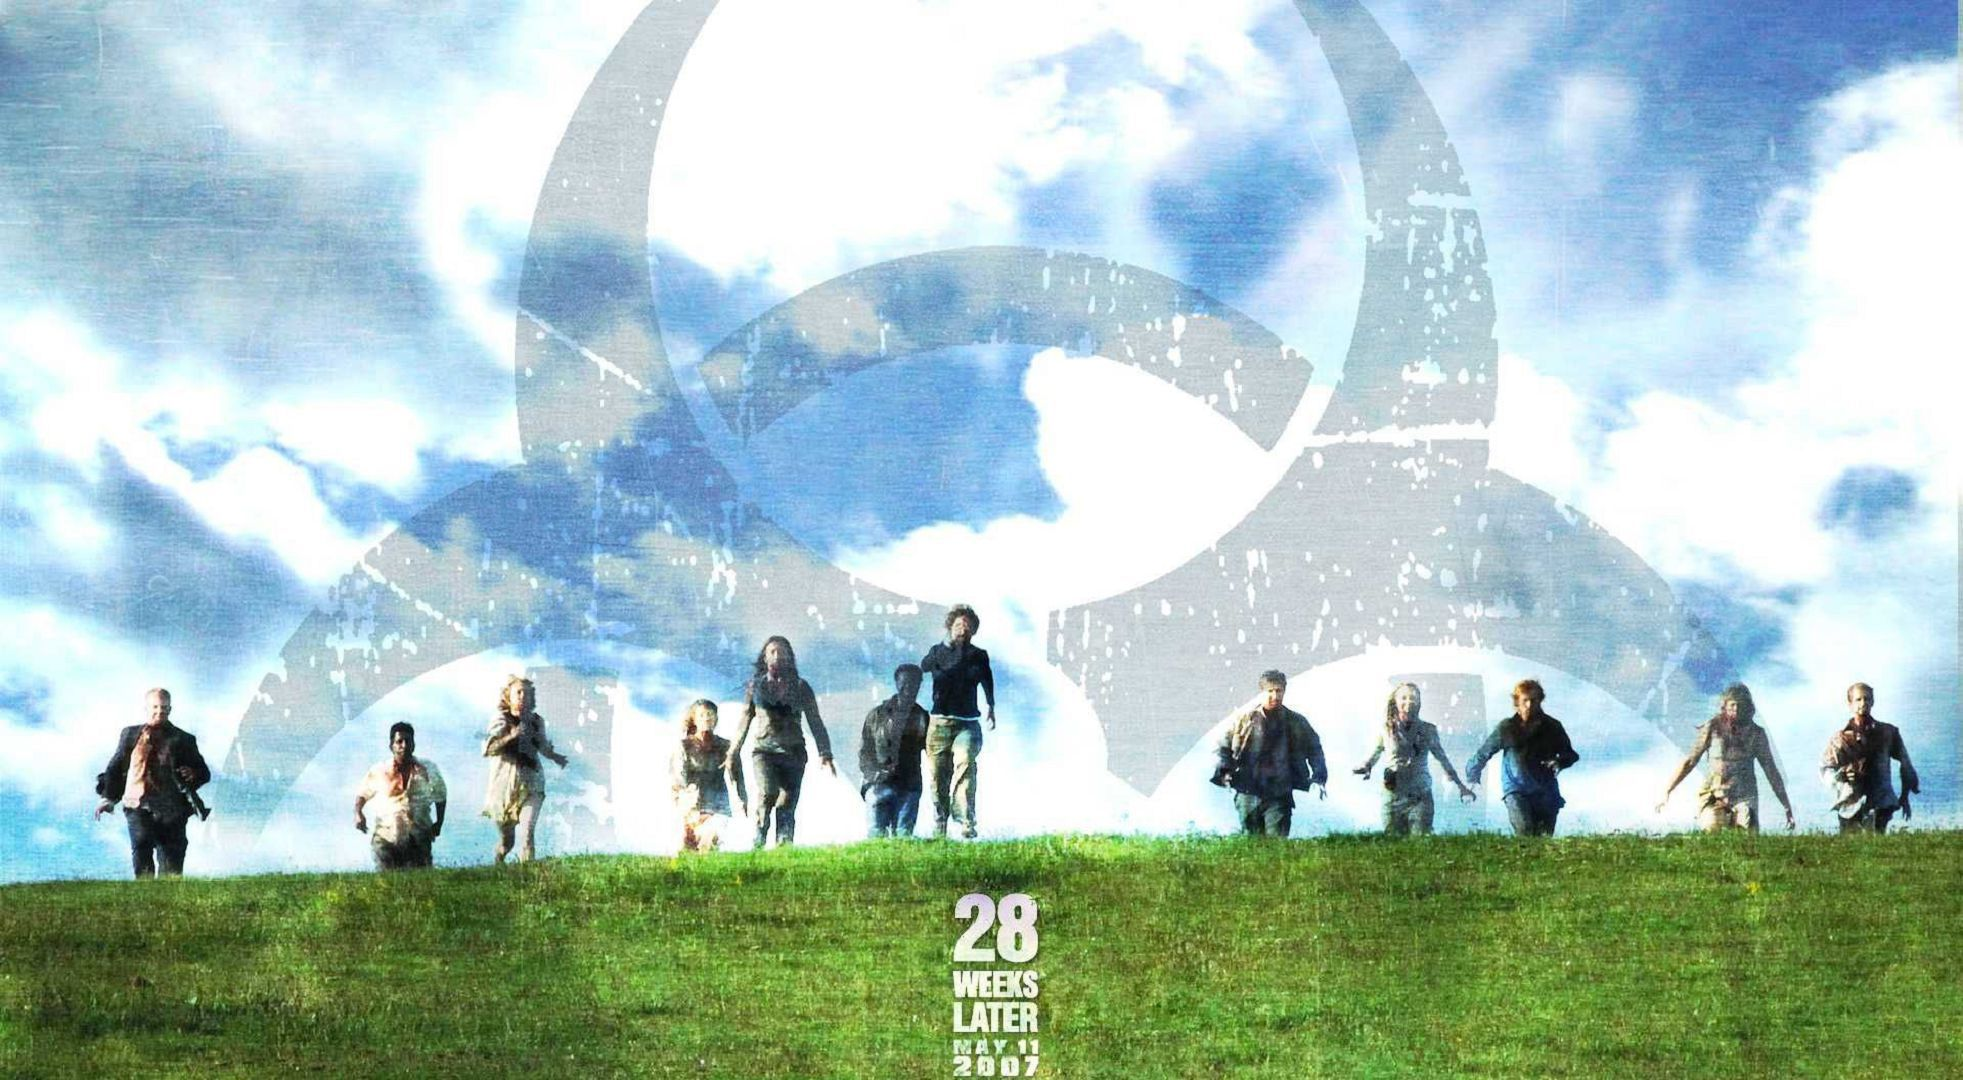 28 Weeks Later Pictures